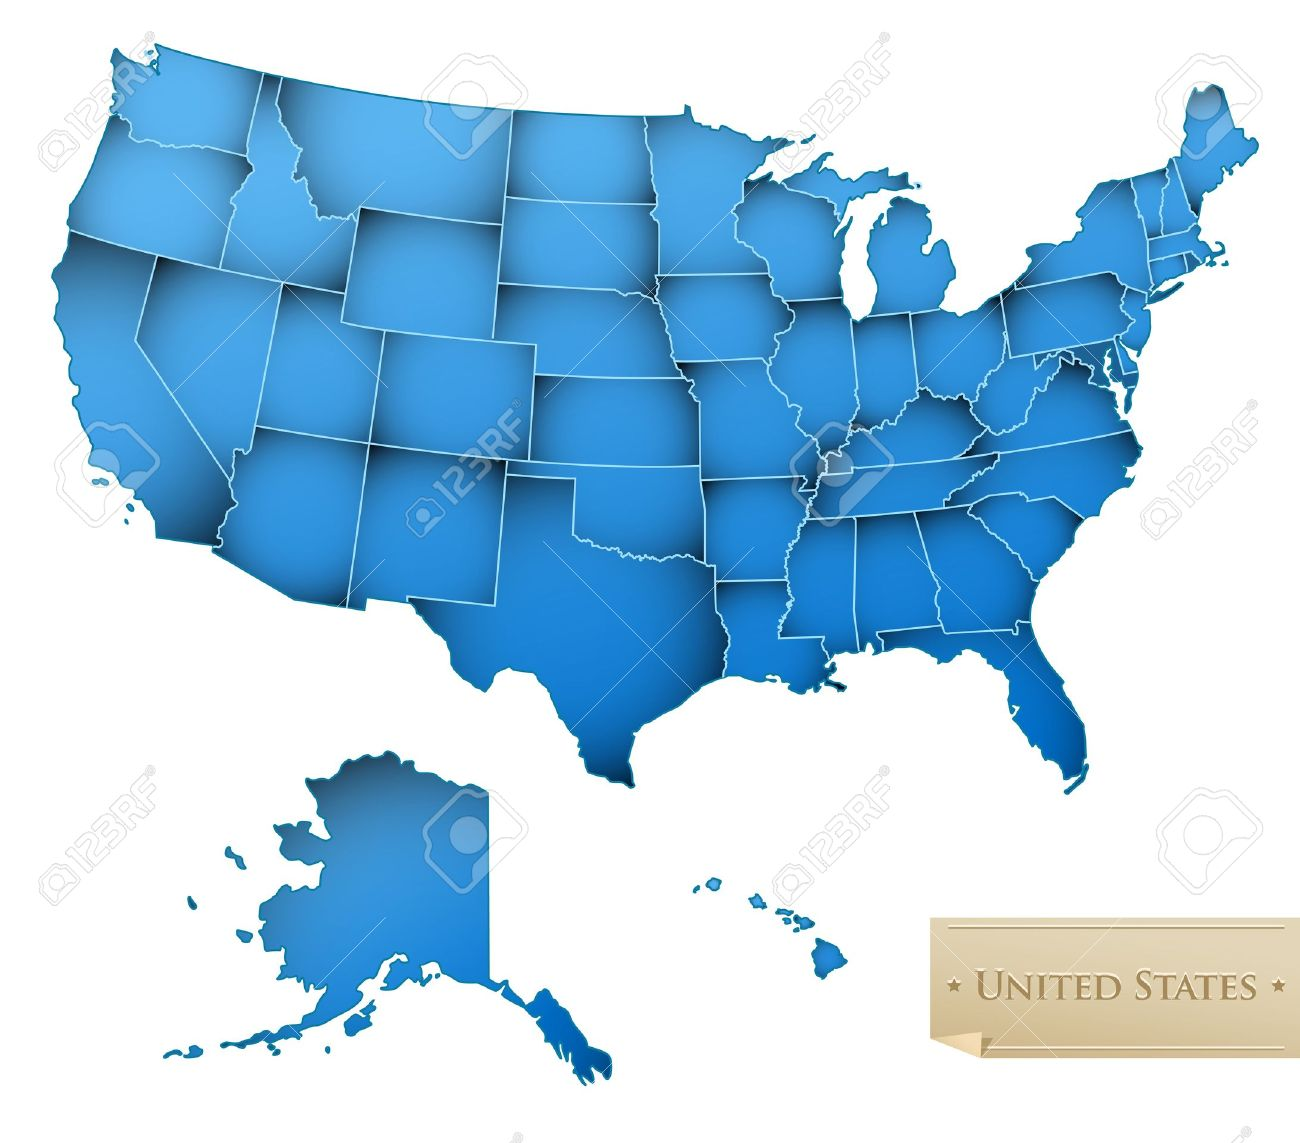 USA Map - United States Of America With All 50 States - Blue ...